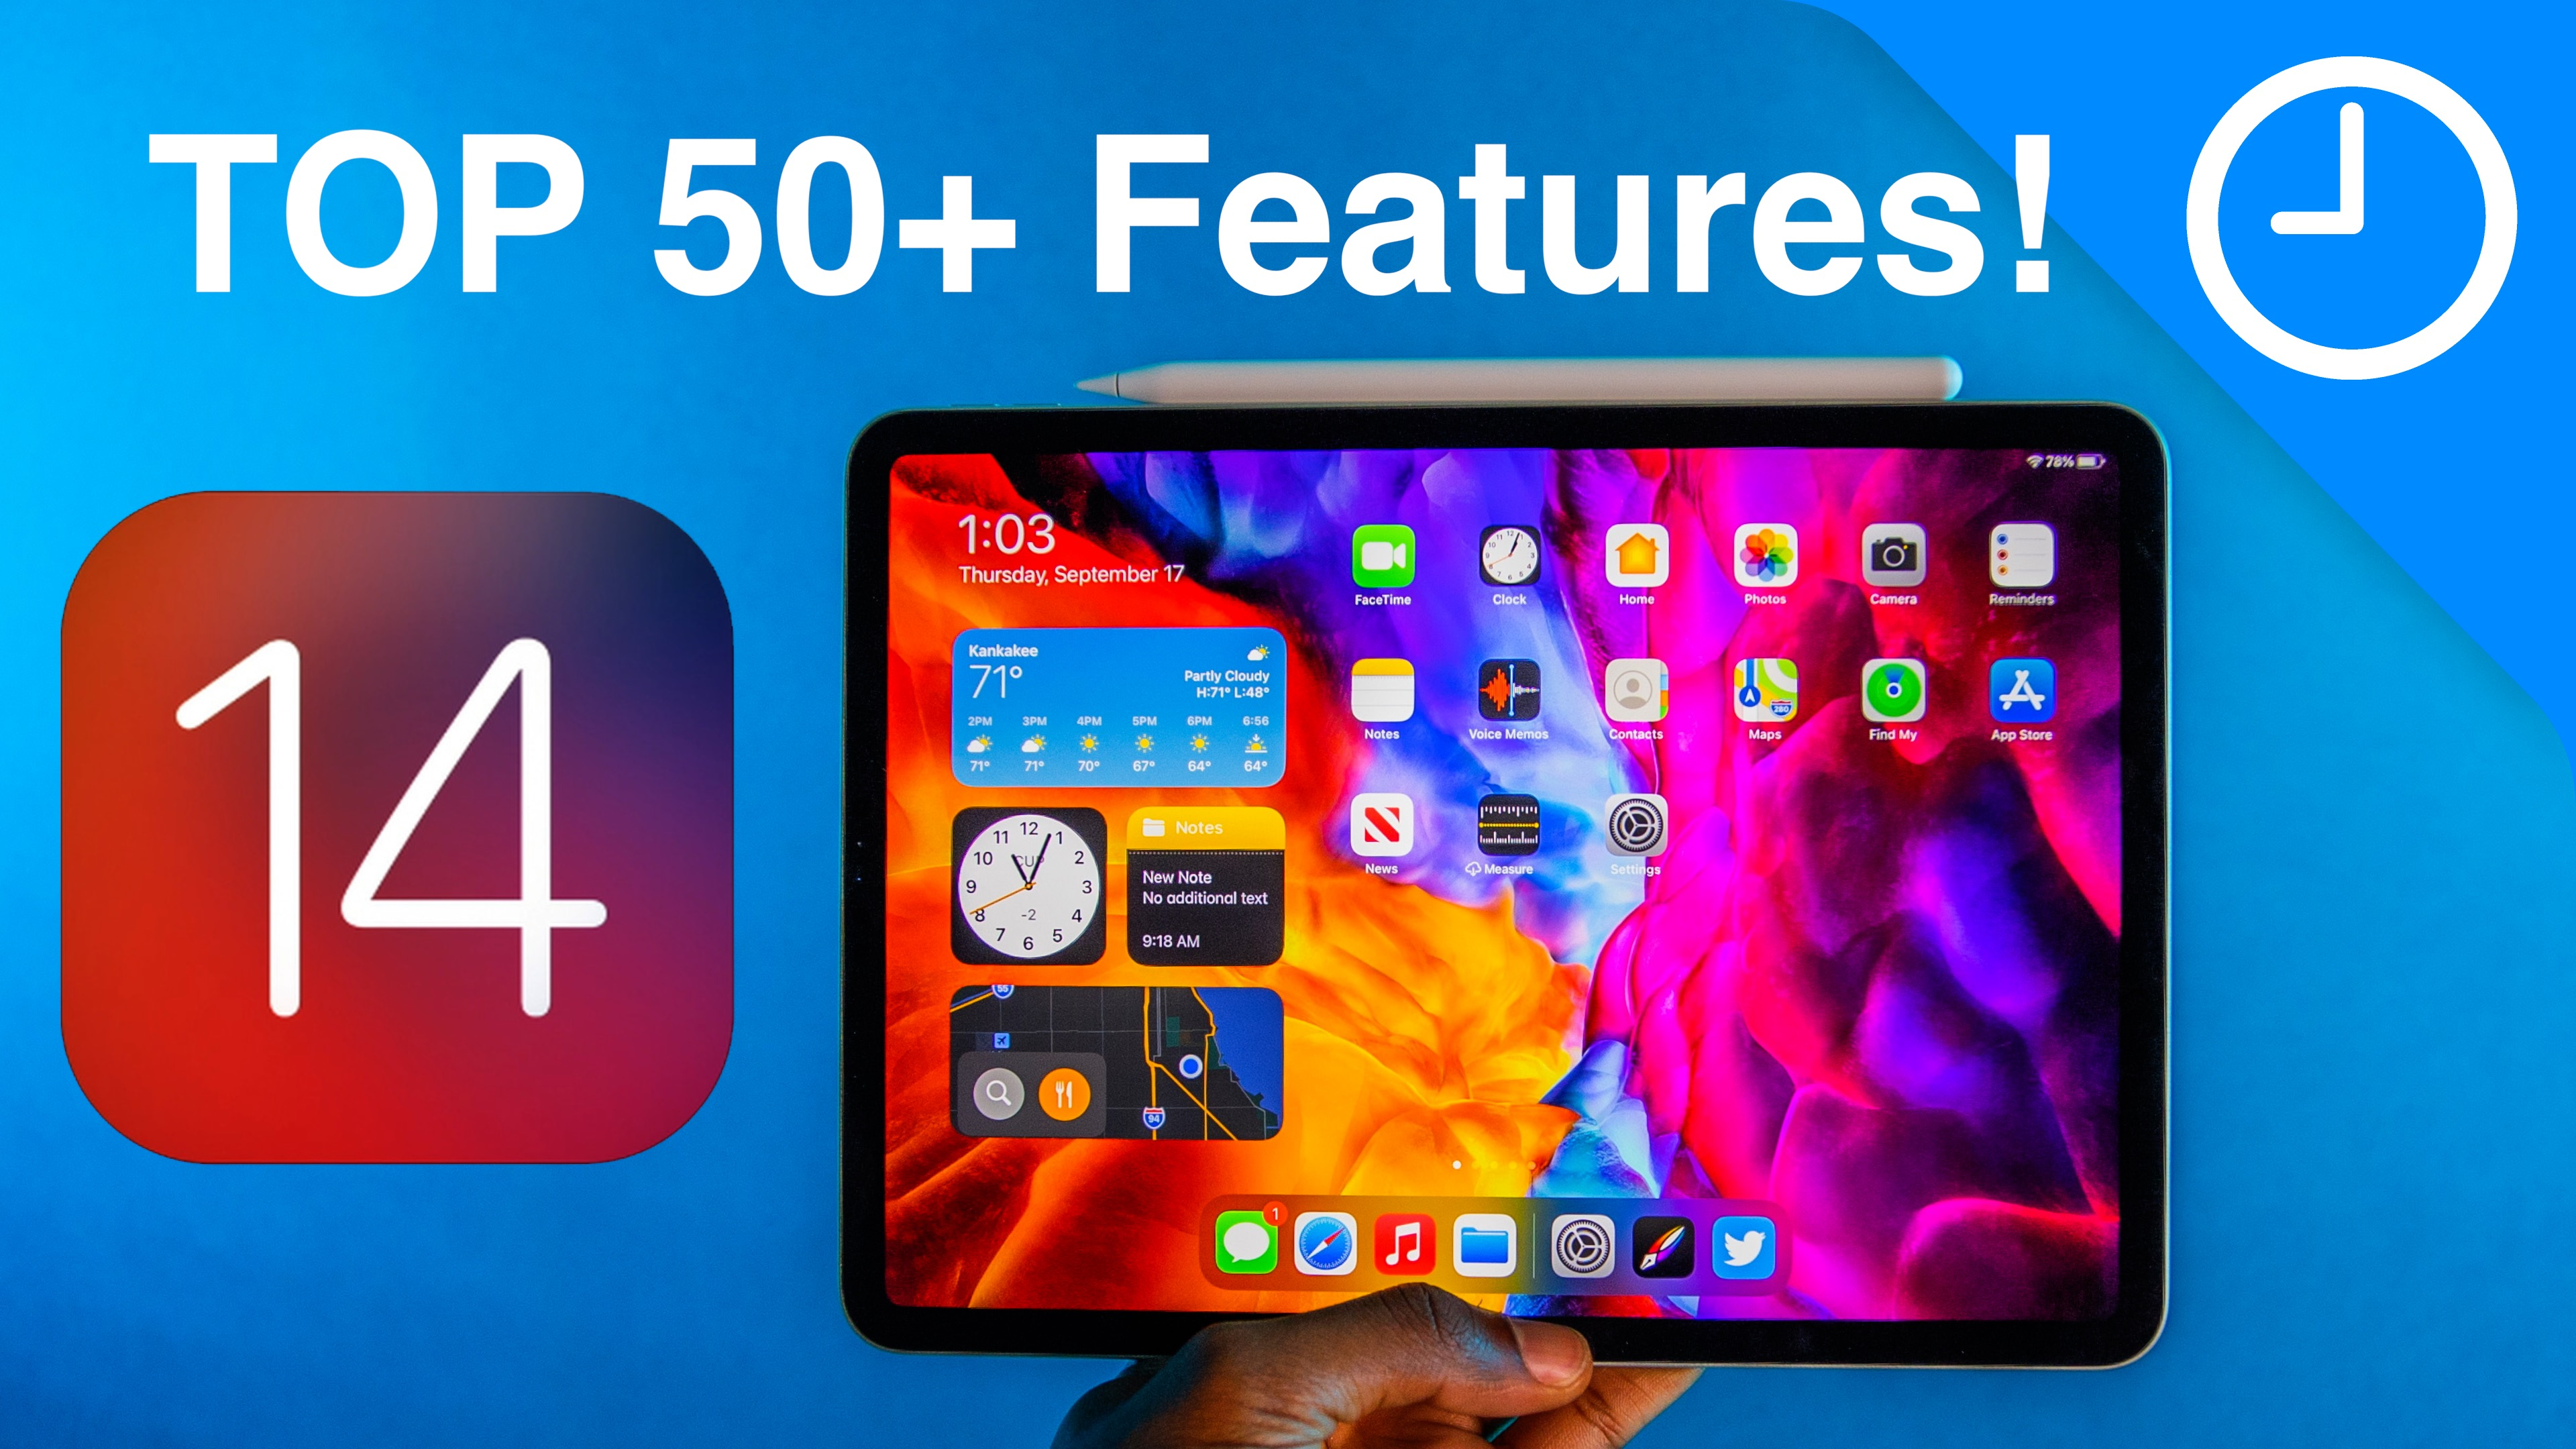 iPadOS 14 – 50+ Top Features and Changes! [Video]